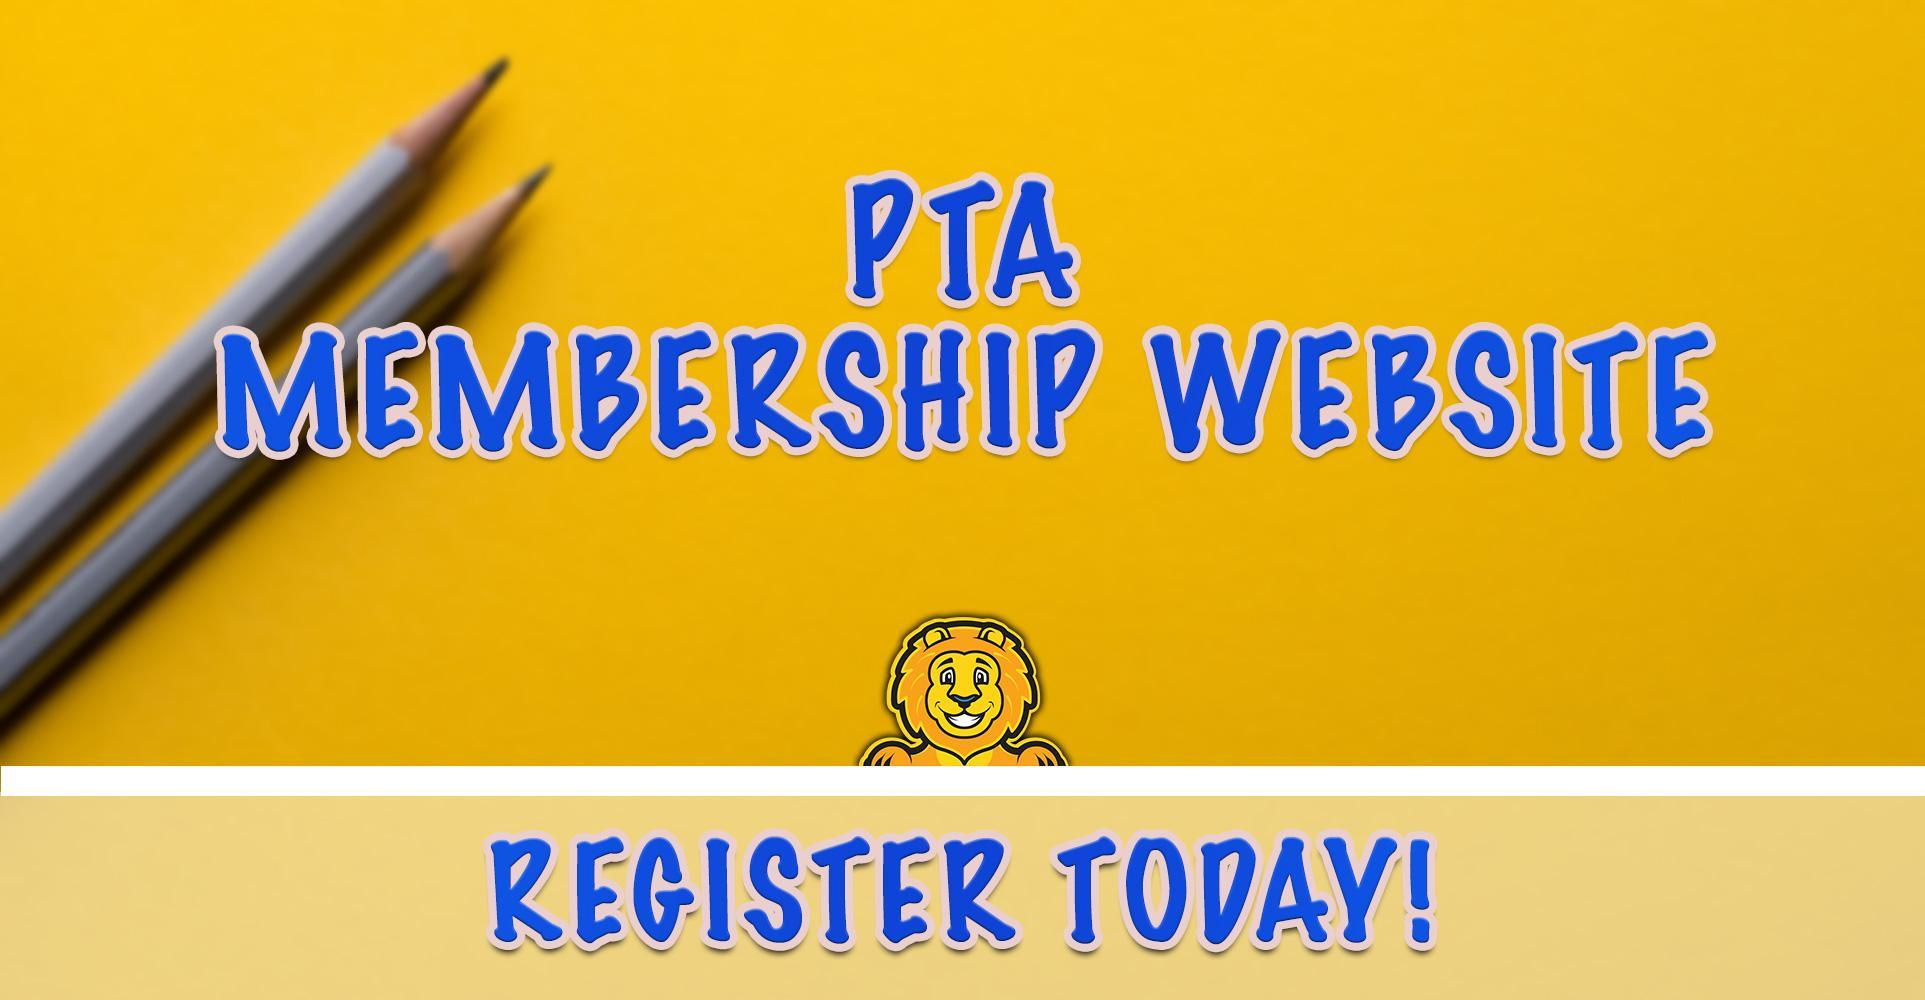 PTA Membership Website - Register Today!